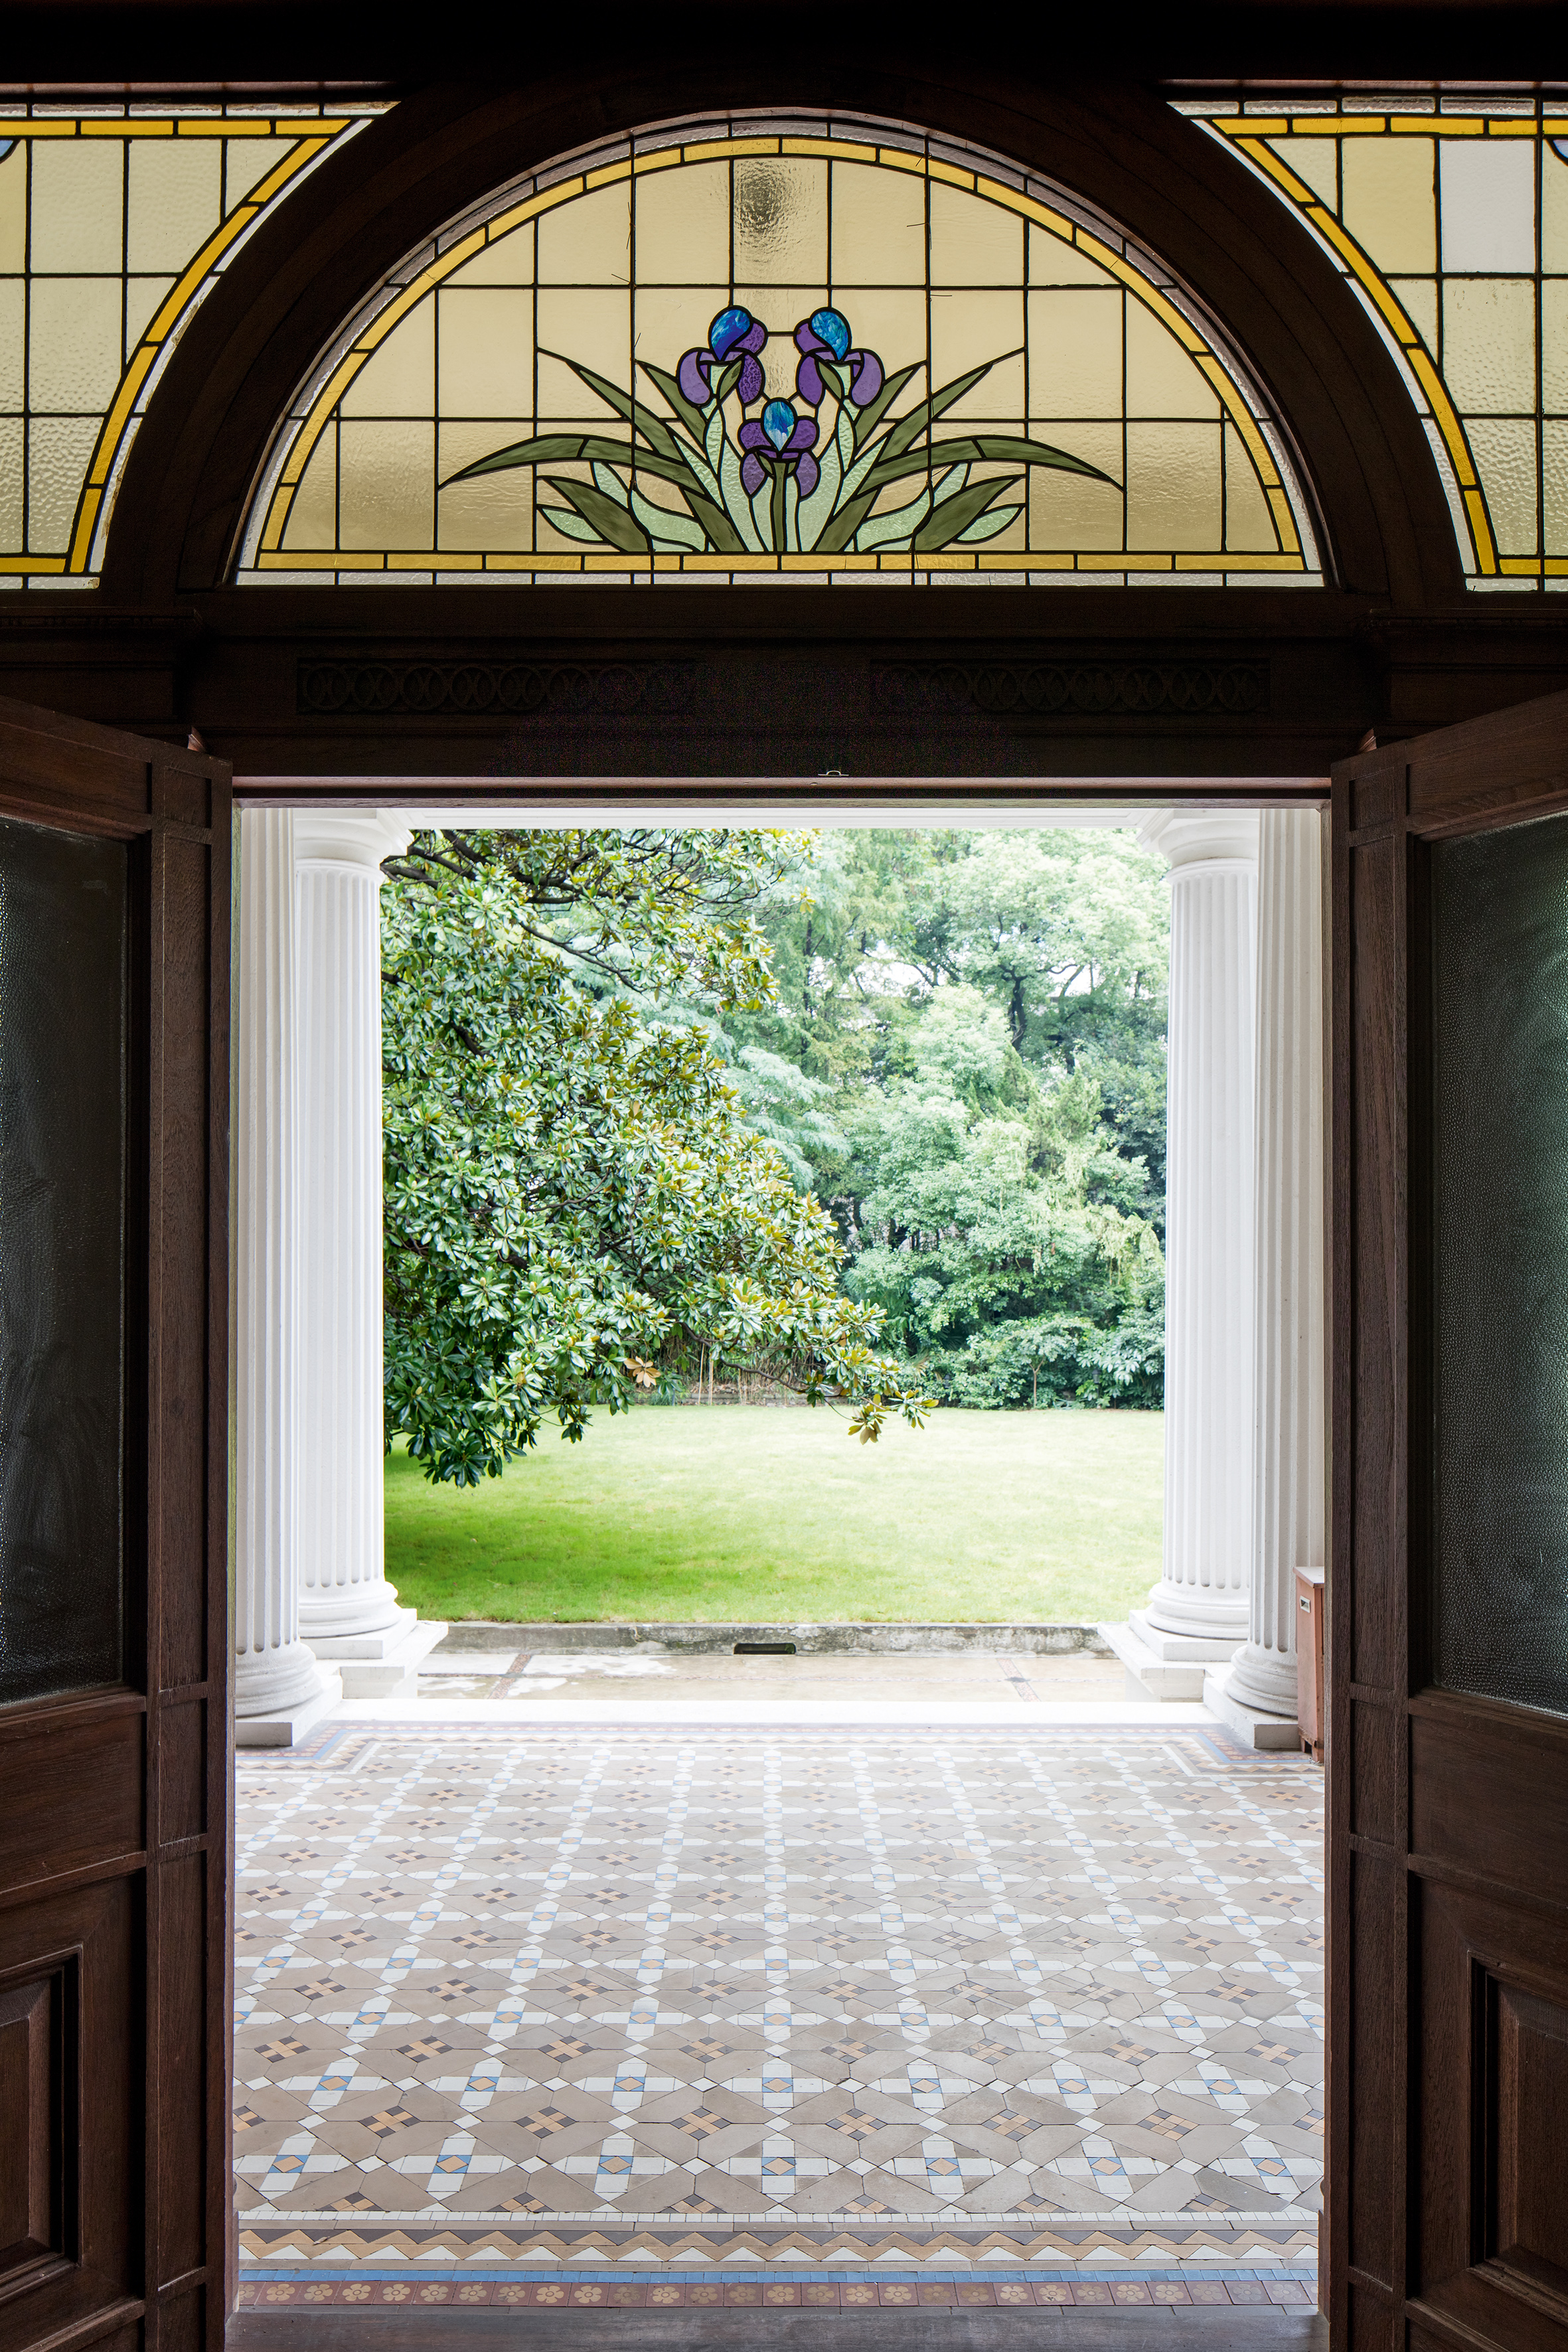 Early 20th-century embellishments draw the eye and are a nod to the gardens beyond